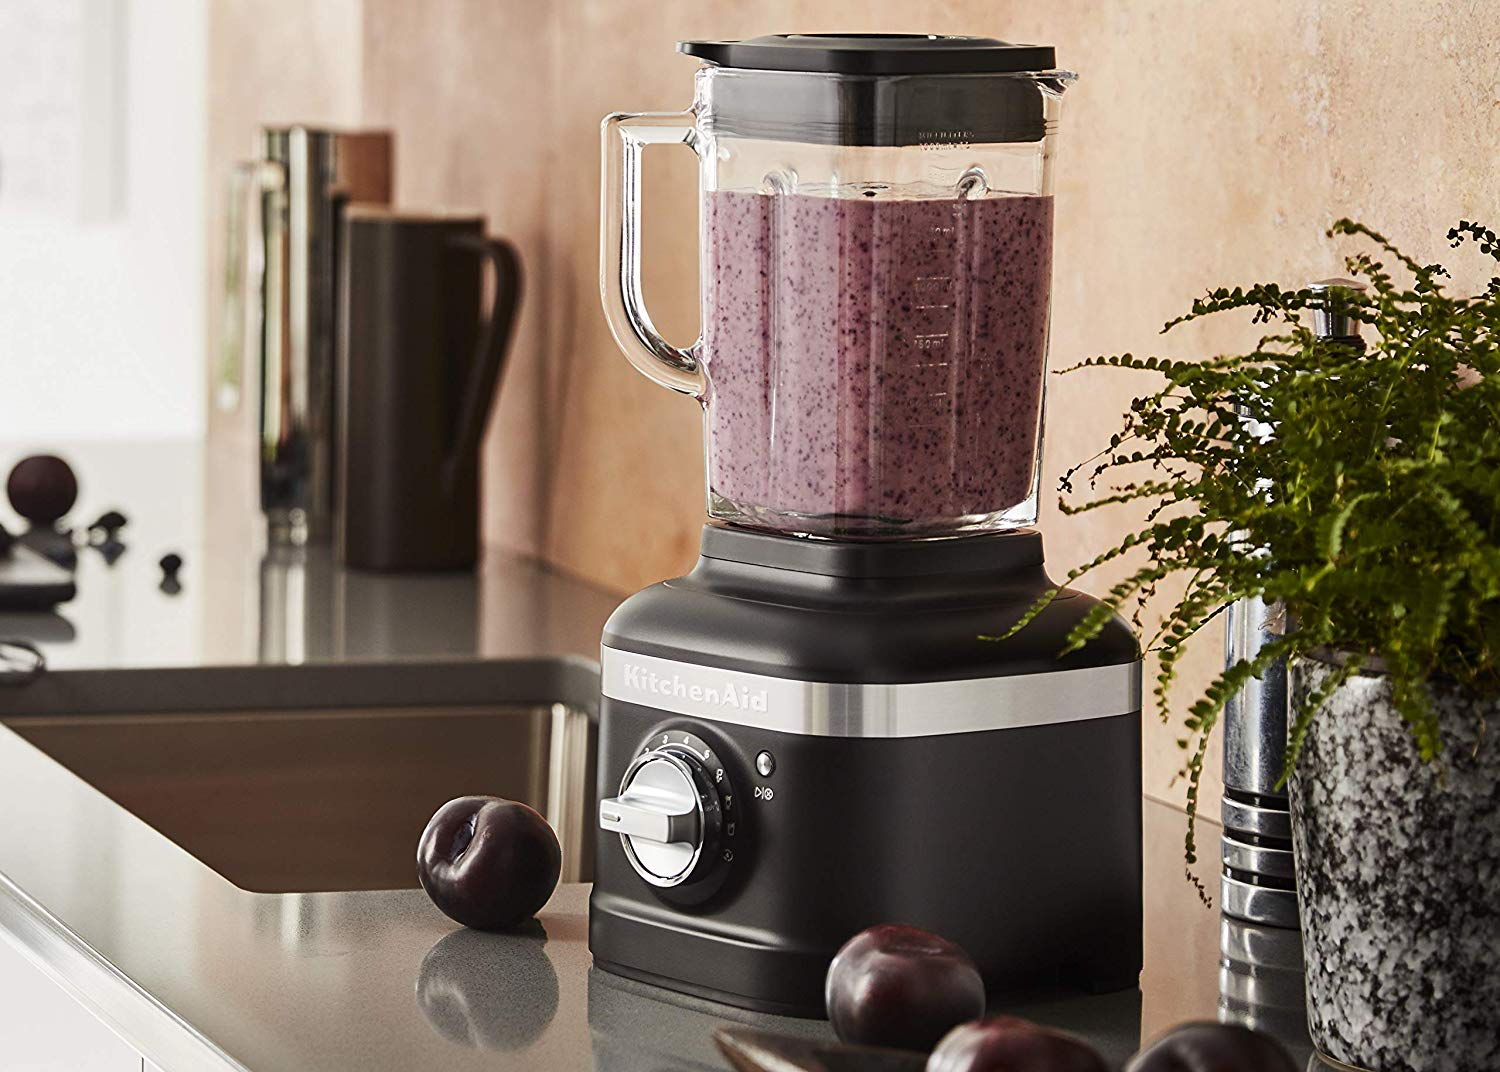 Kitchenaid 5 Speed K400 Blender With 1 5 Peak Hp Motor